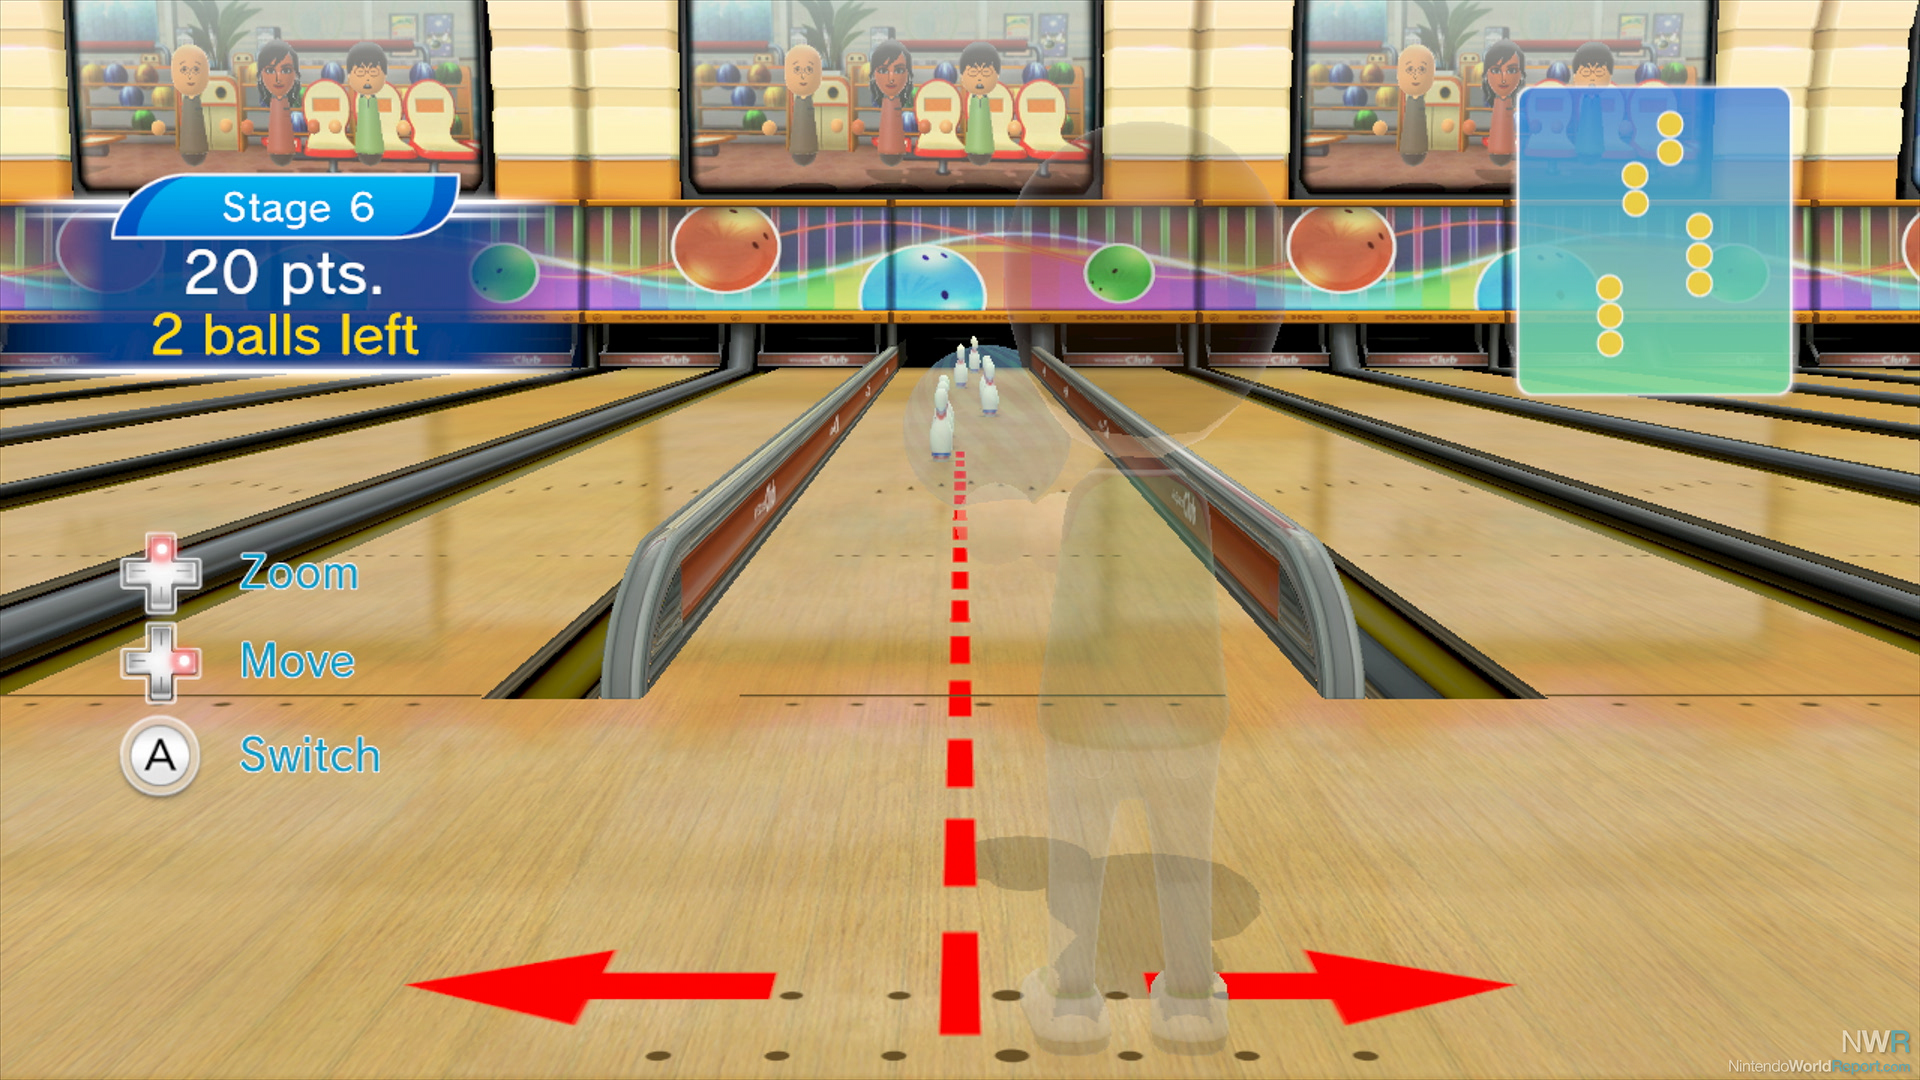 Wii Sports Contents Wii Sports Club Bowling Isn't